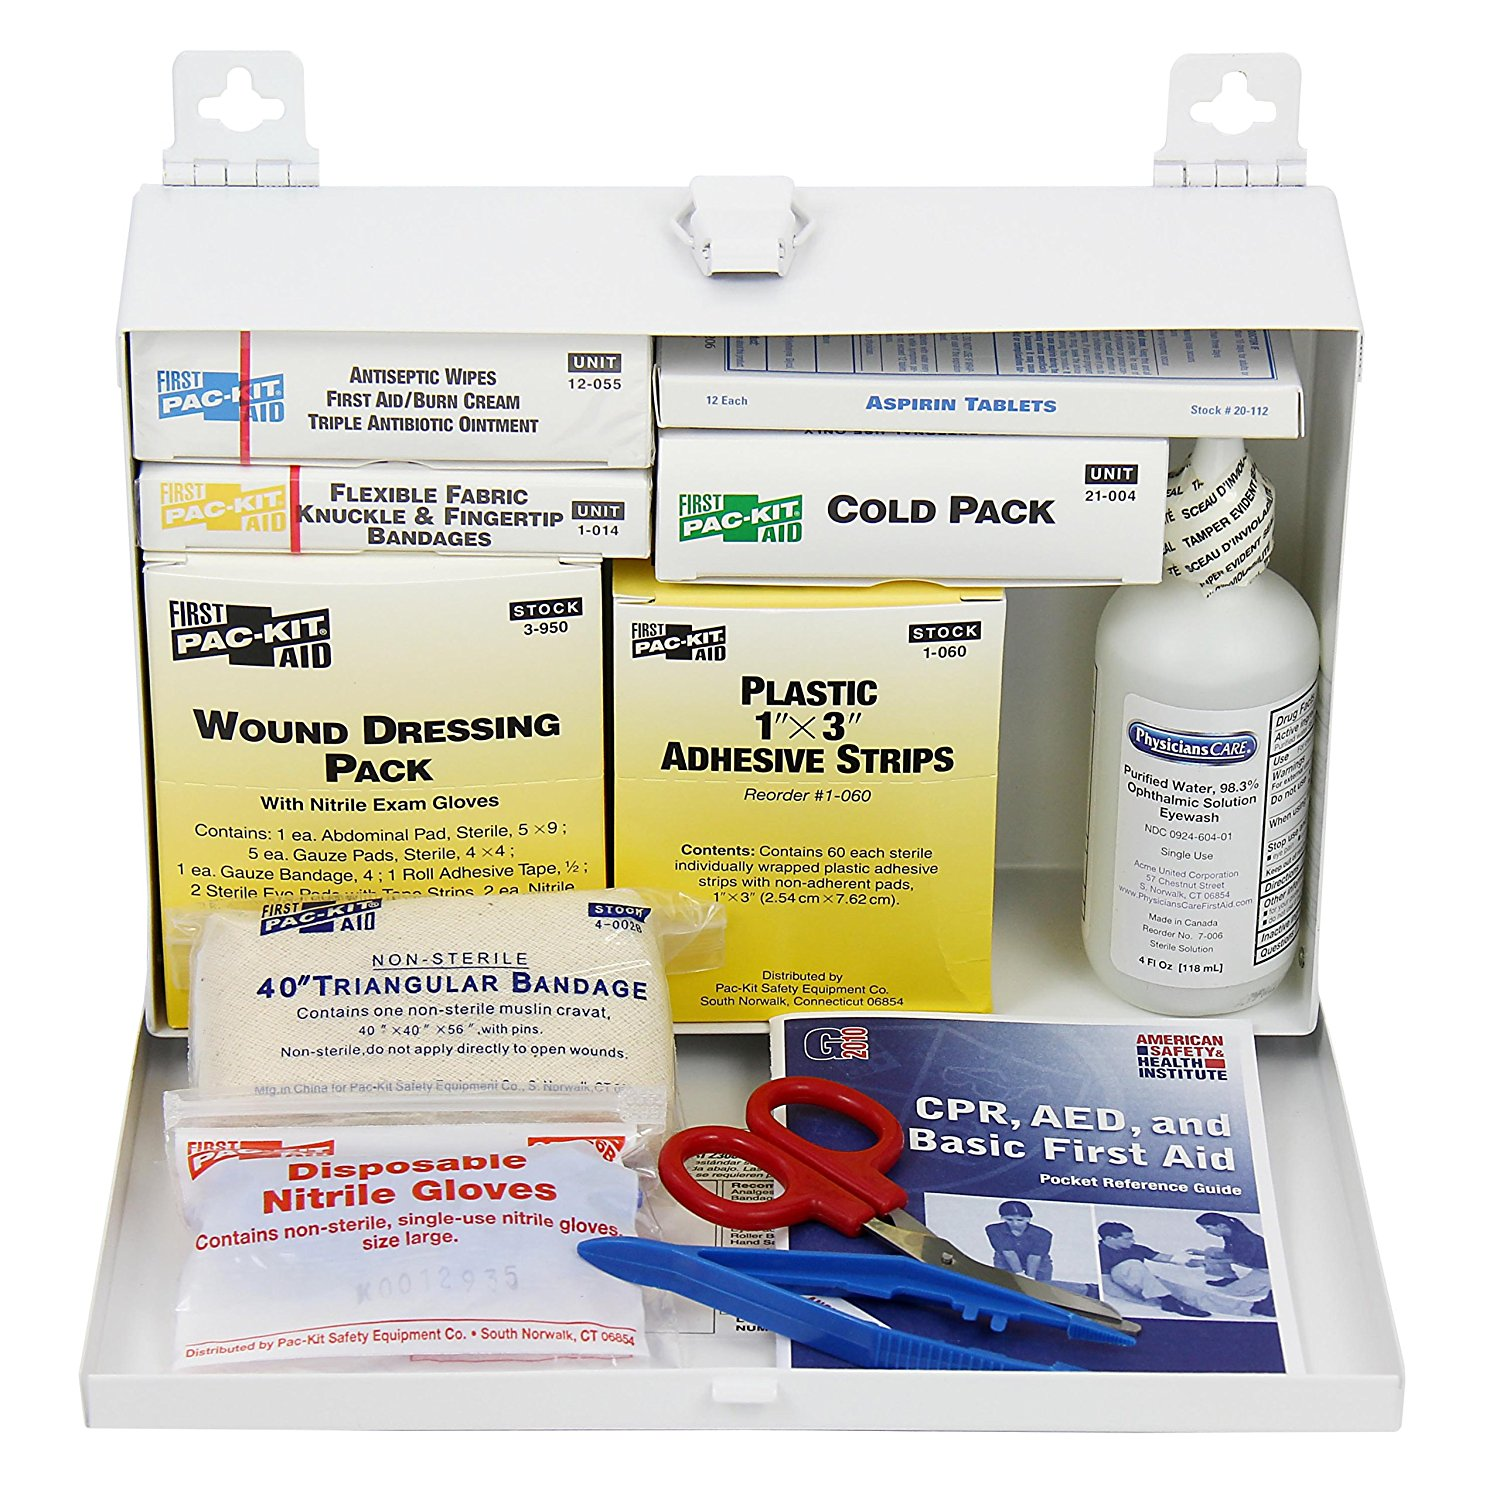 by First Aid Only 6100, 143 Piece ANSI Plus, 25 Person First Aid Kit With Steel Case, Waterproof Premium PVP PacKit 8010 Povidone Coded Capacity 90 Aid 10.., By Pac-Kit